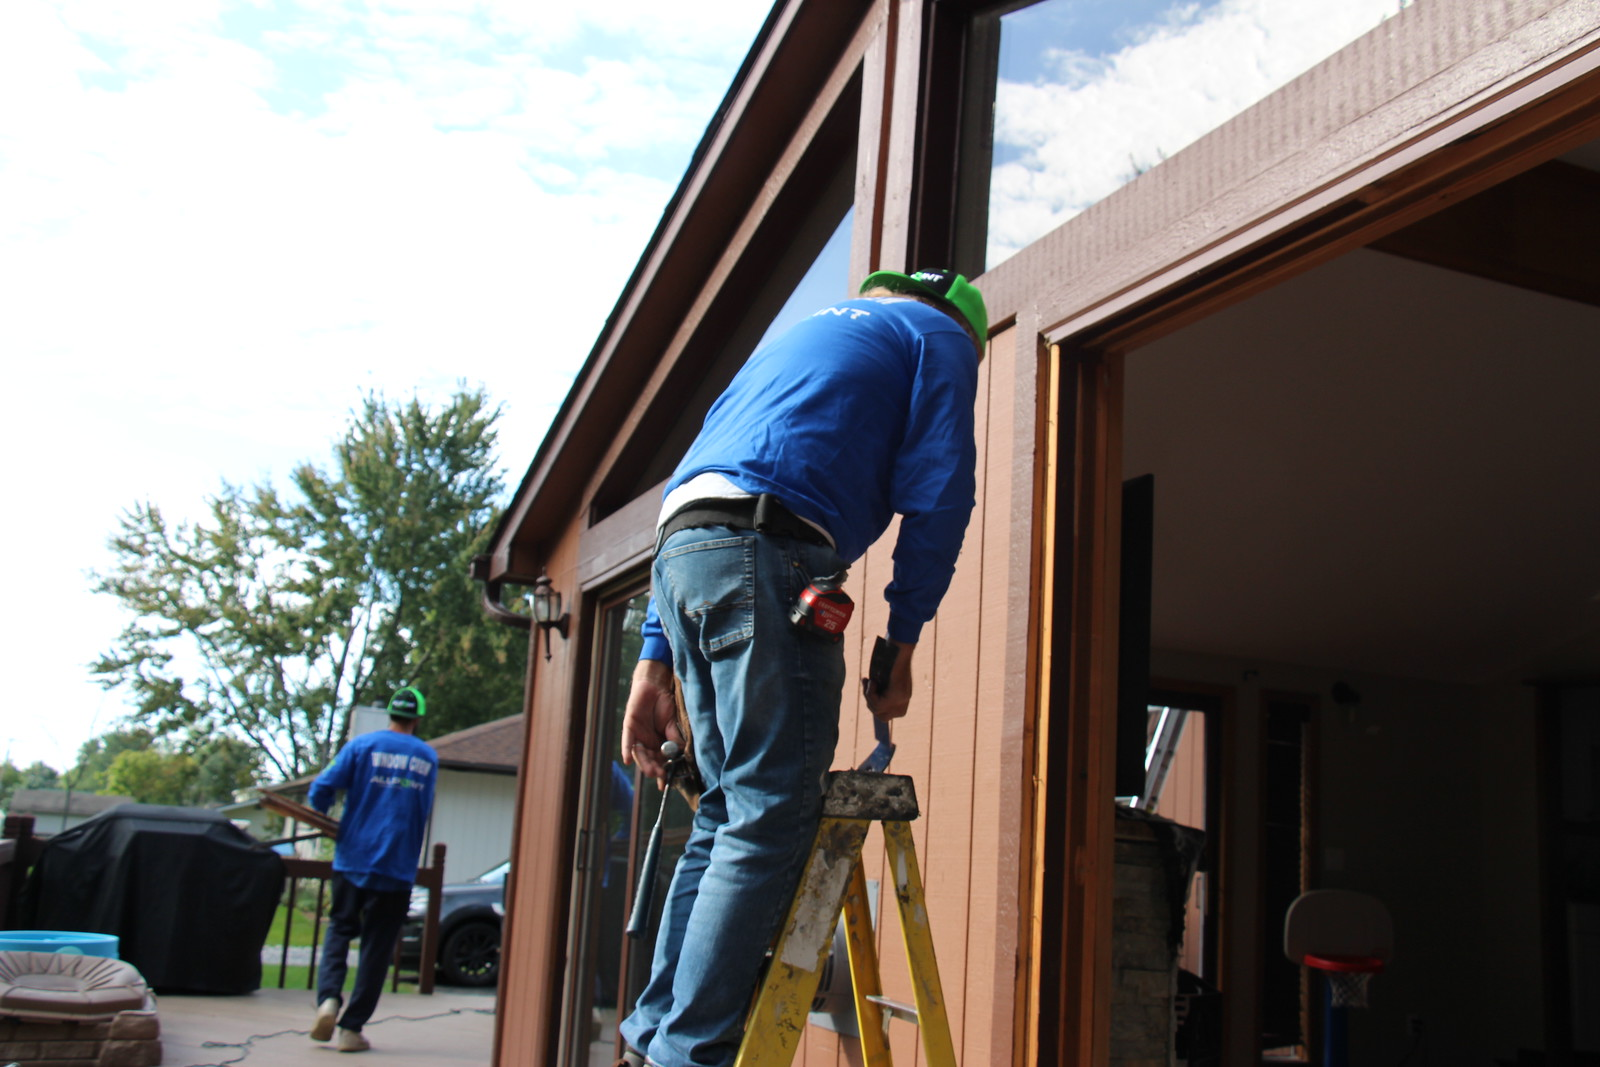 Replacement windows for residents in Southgate Michigan